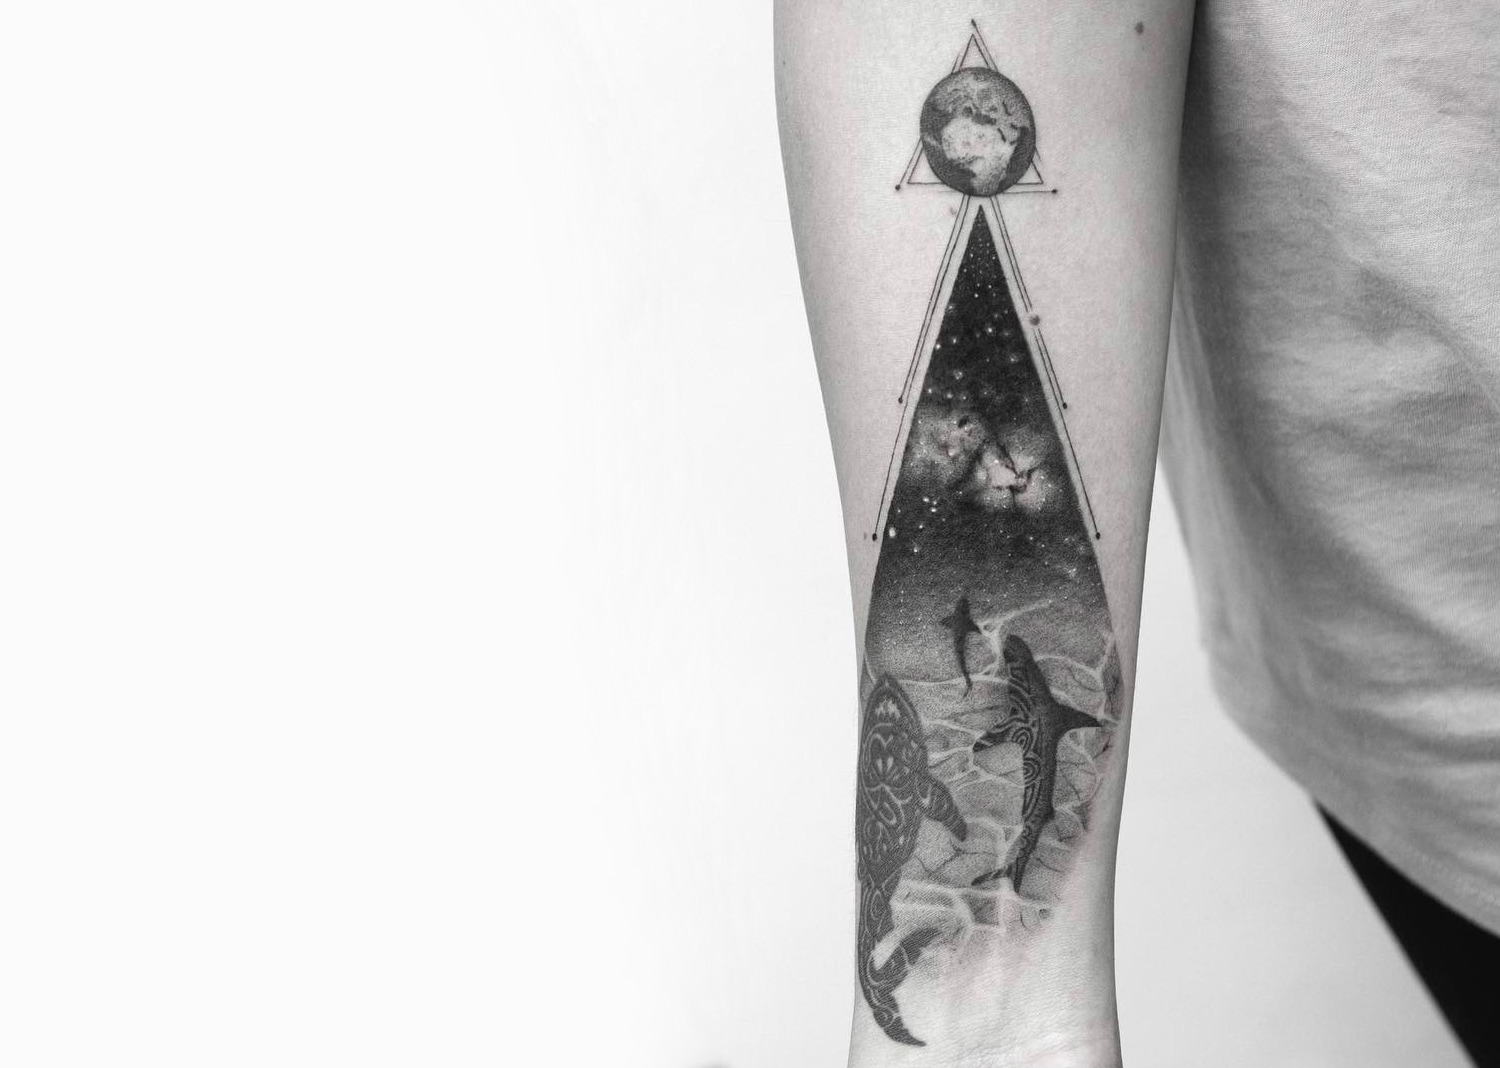 Sharks in the cosmos tattoo by Balazs Bercsenyi